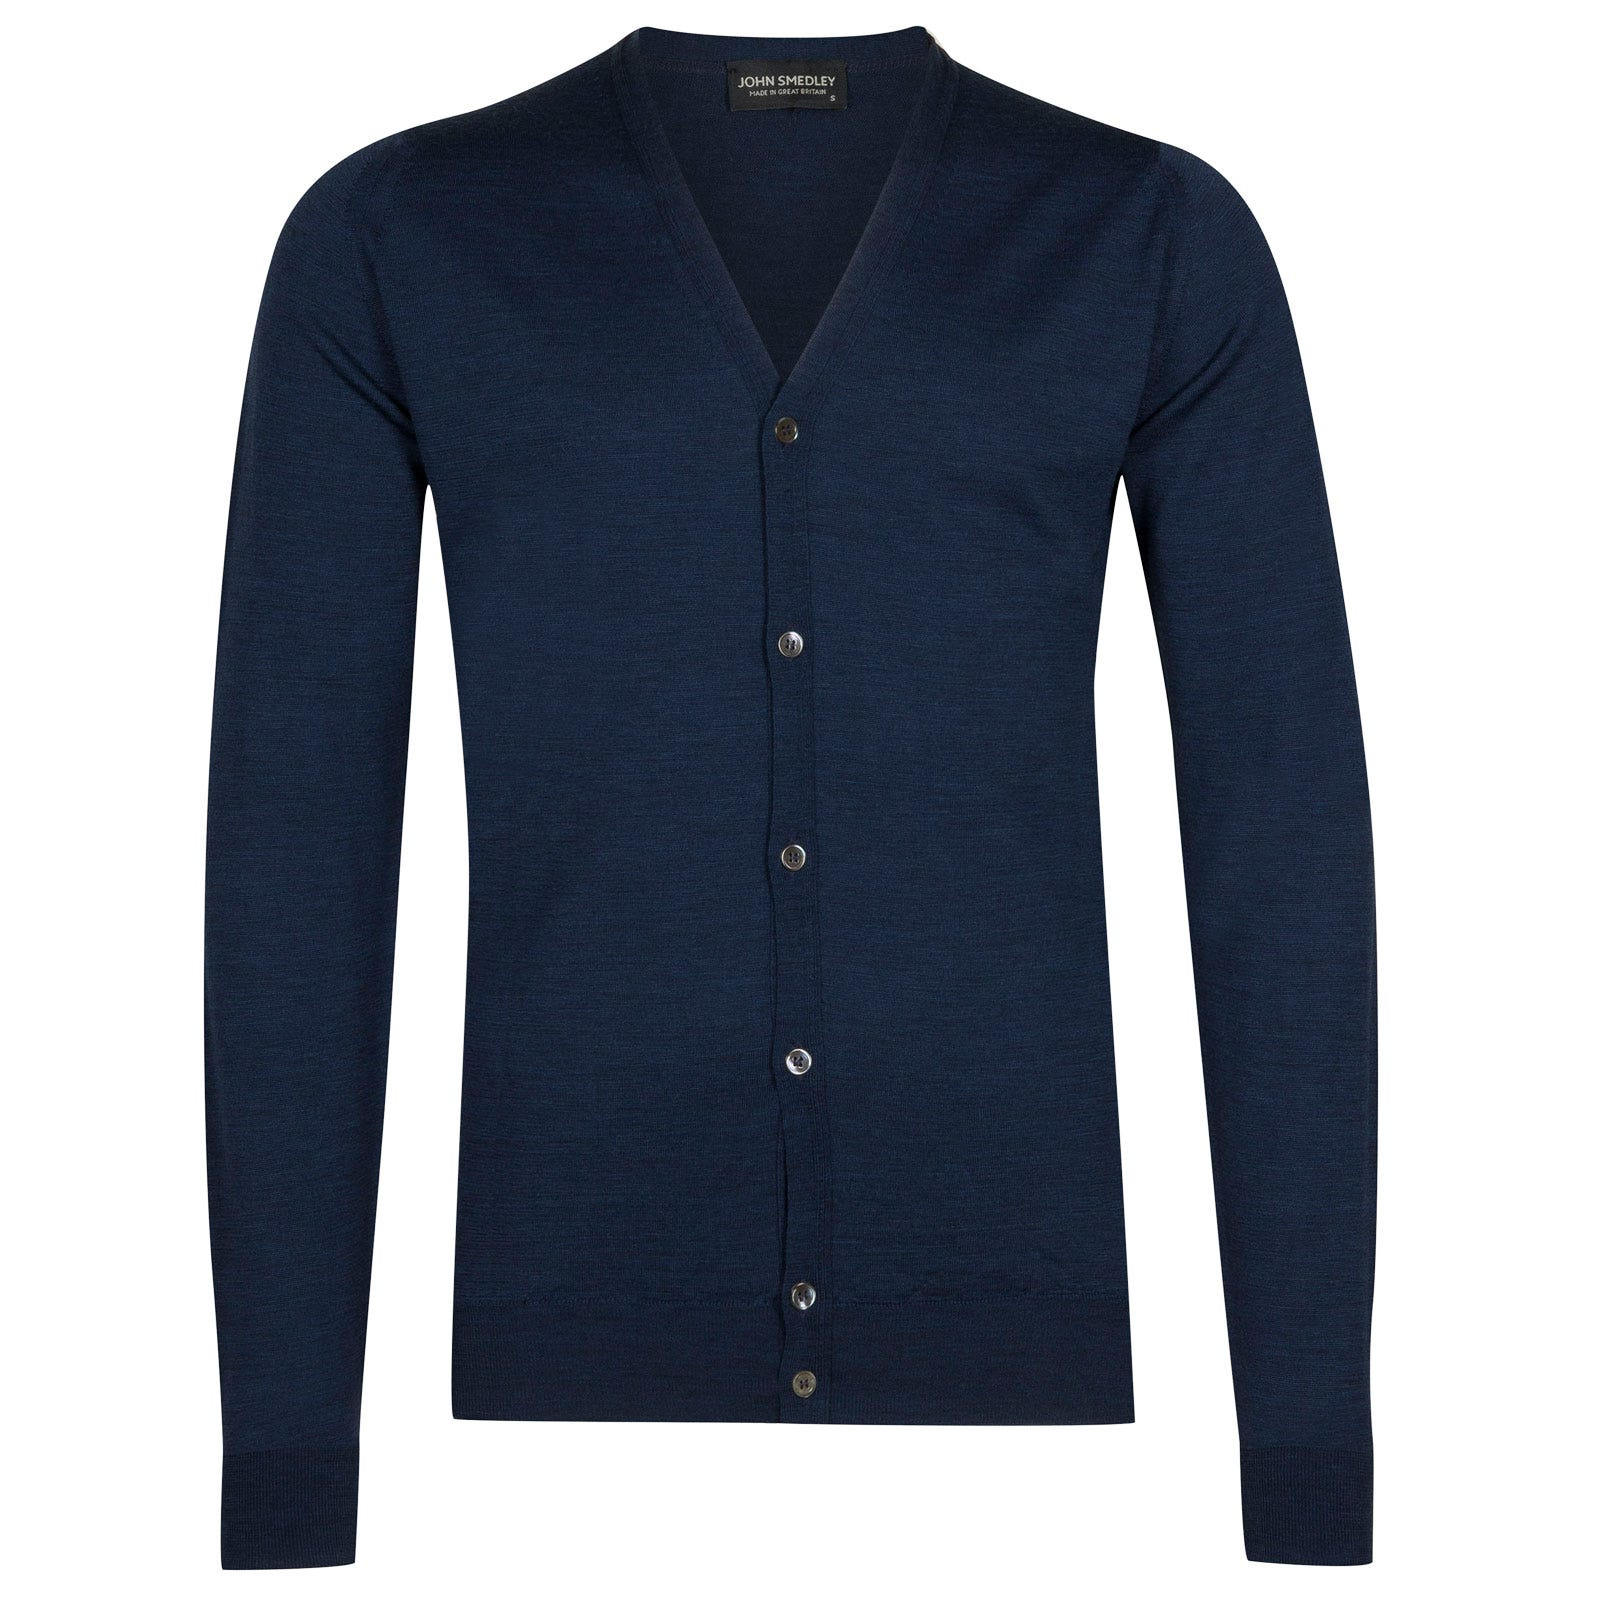 John Smedley petworth Merino Wool Cardigan in Indigo-L